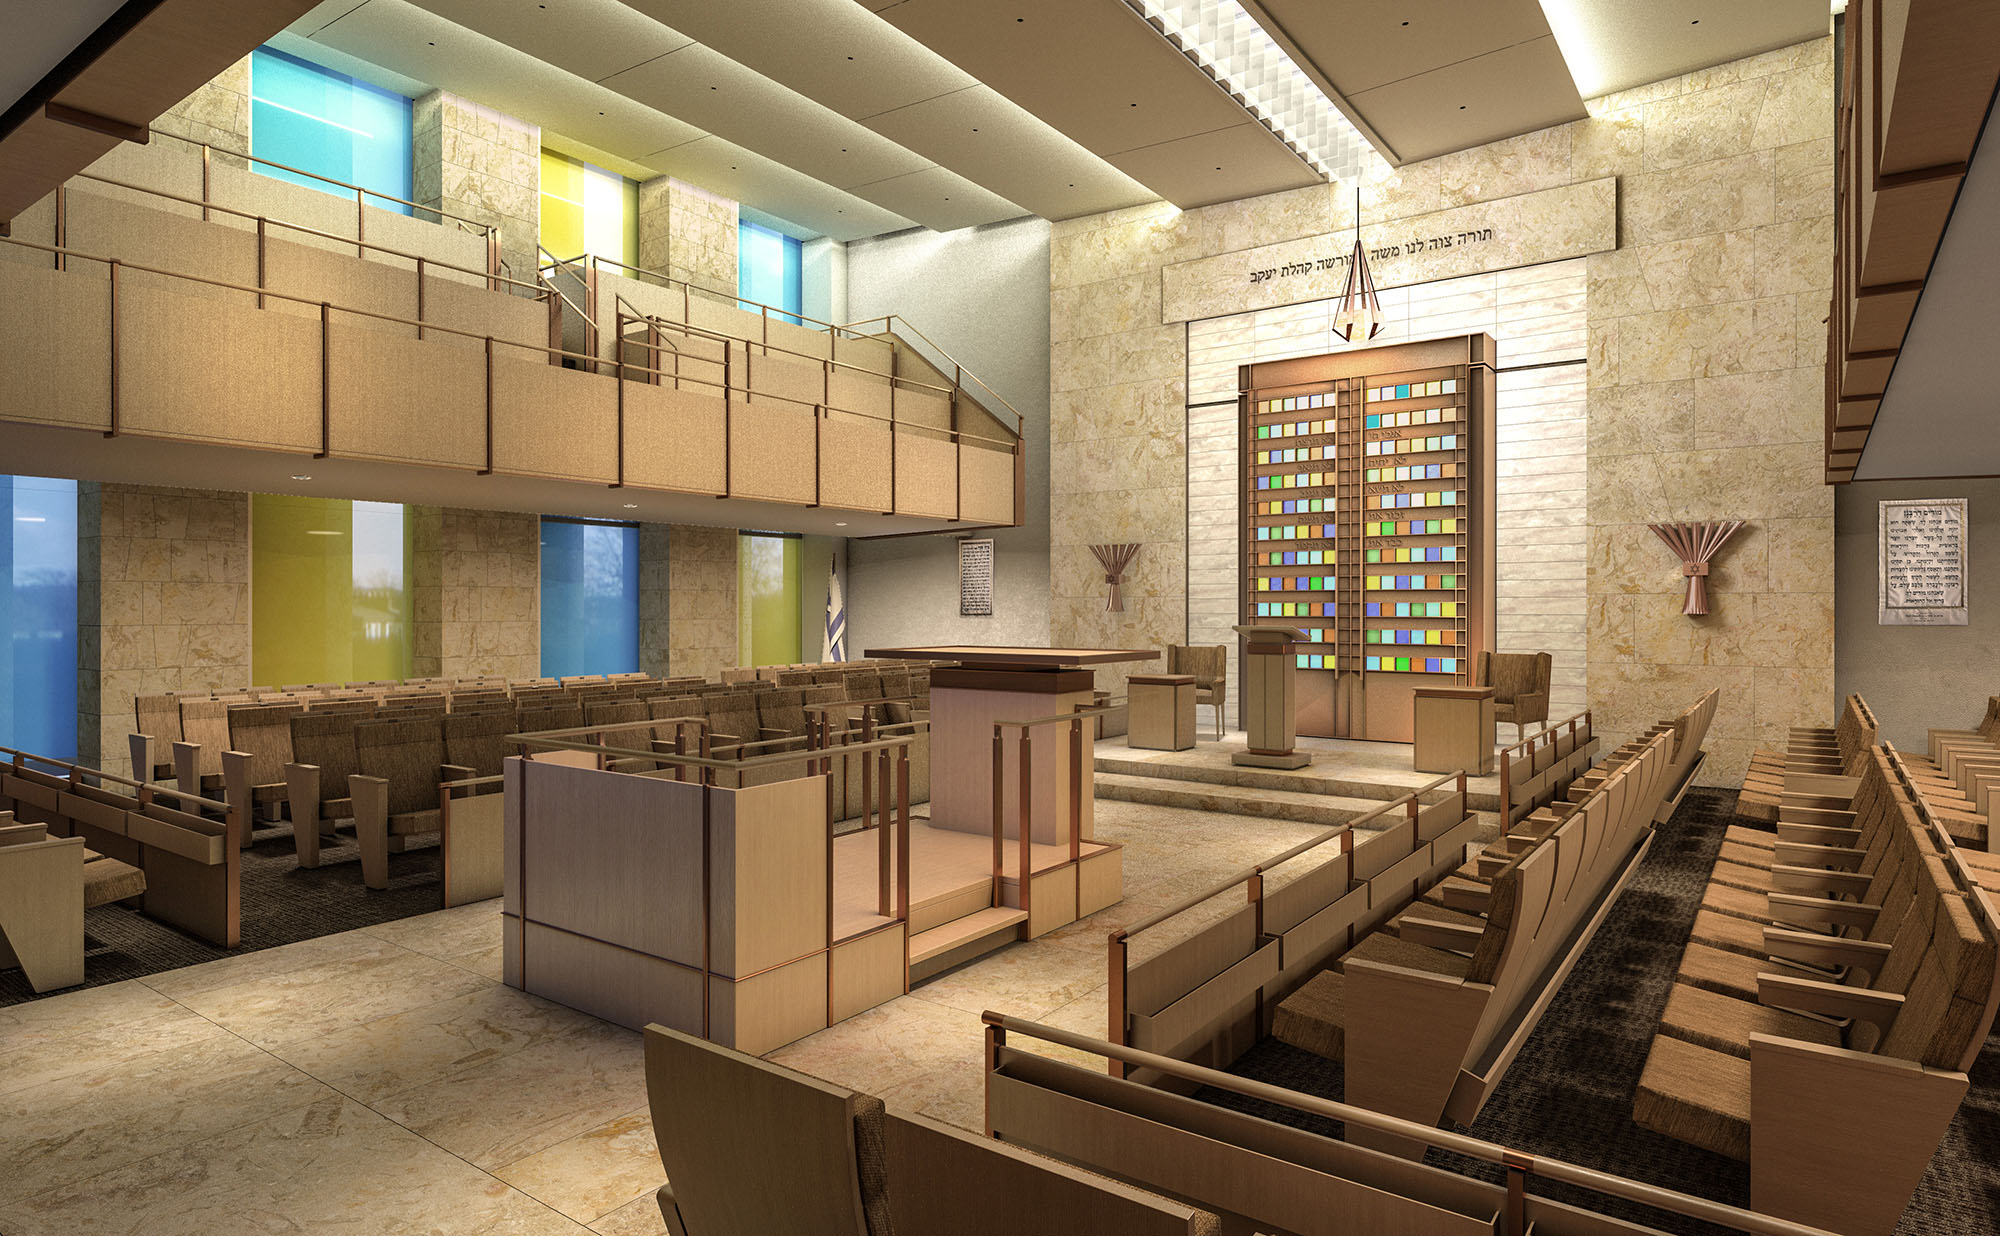 Interior view of the synagogue on the second floor.